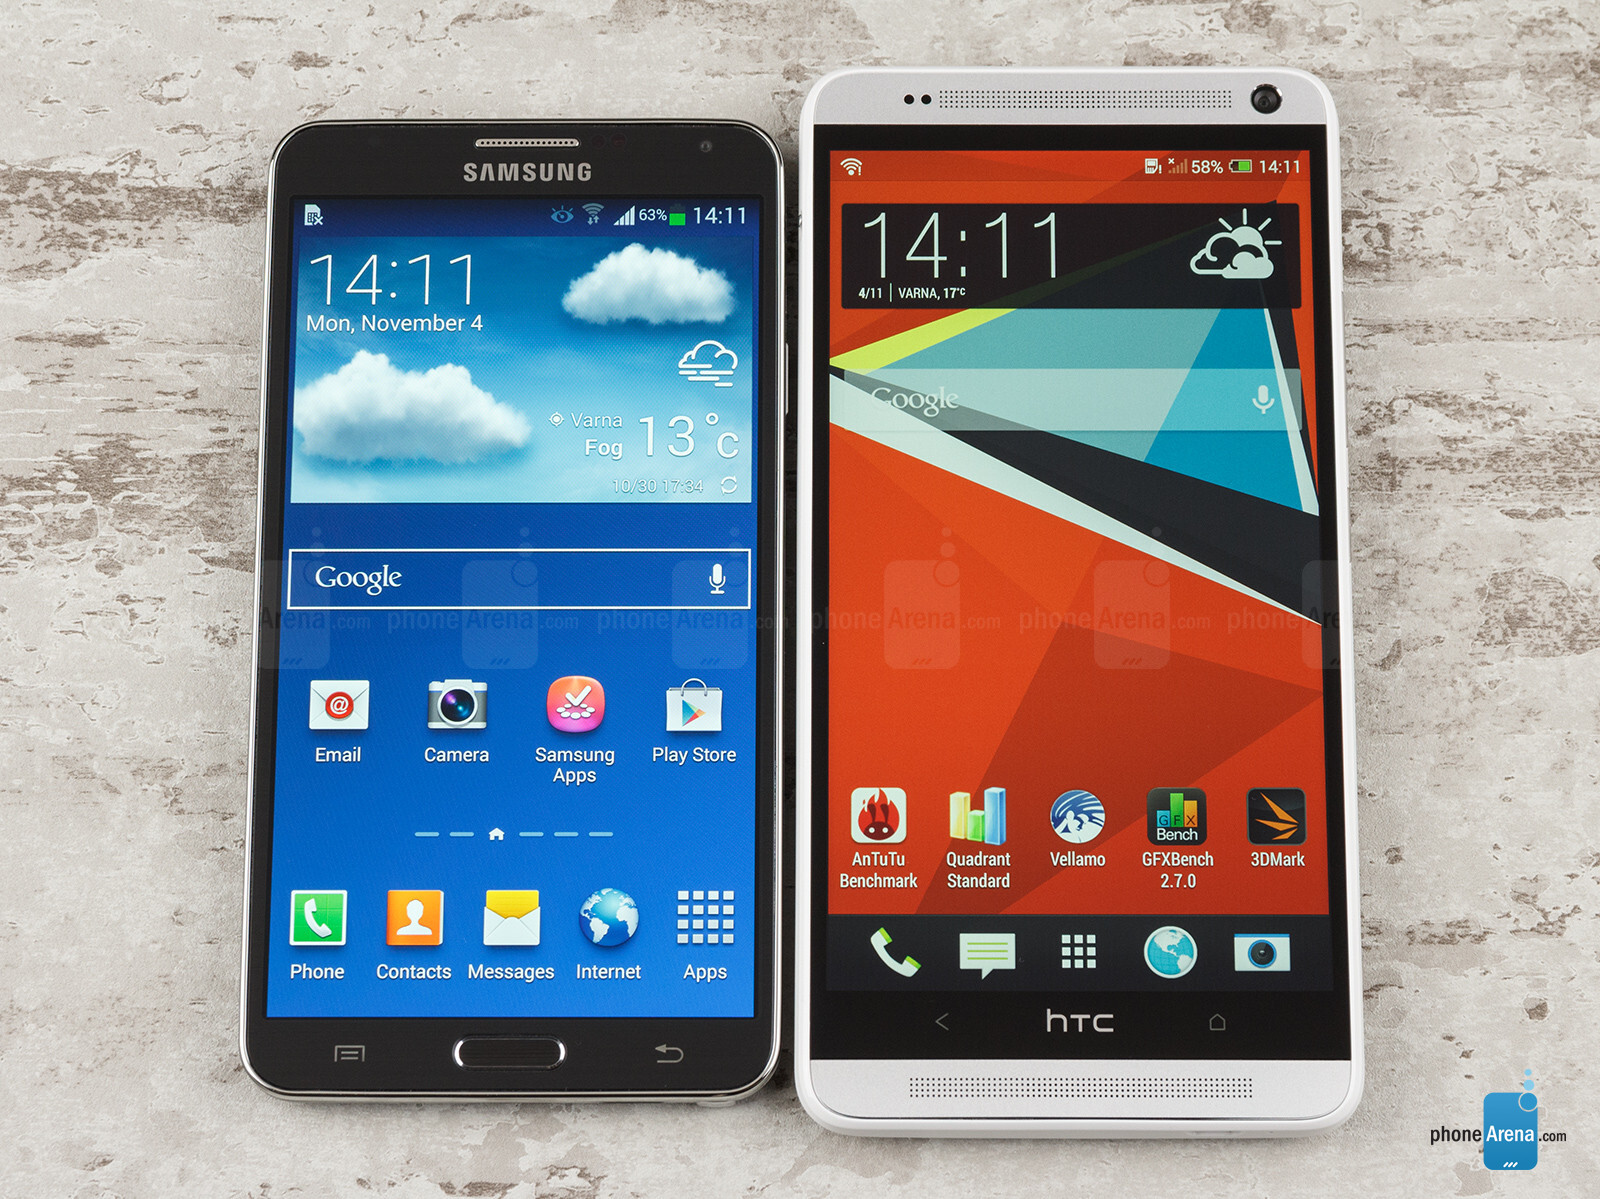 htc one max vs samsung galaxy note 3 phonearena. Black Bedroom Furniture Sets. Home Design Ideas